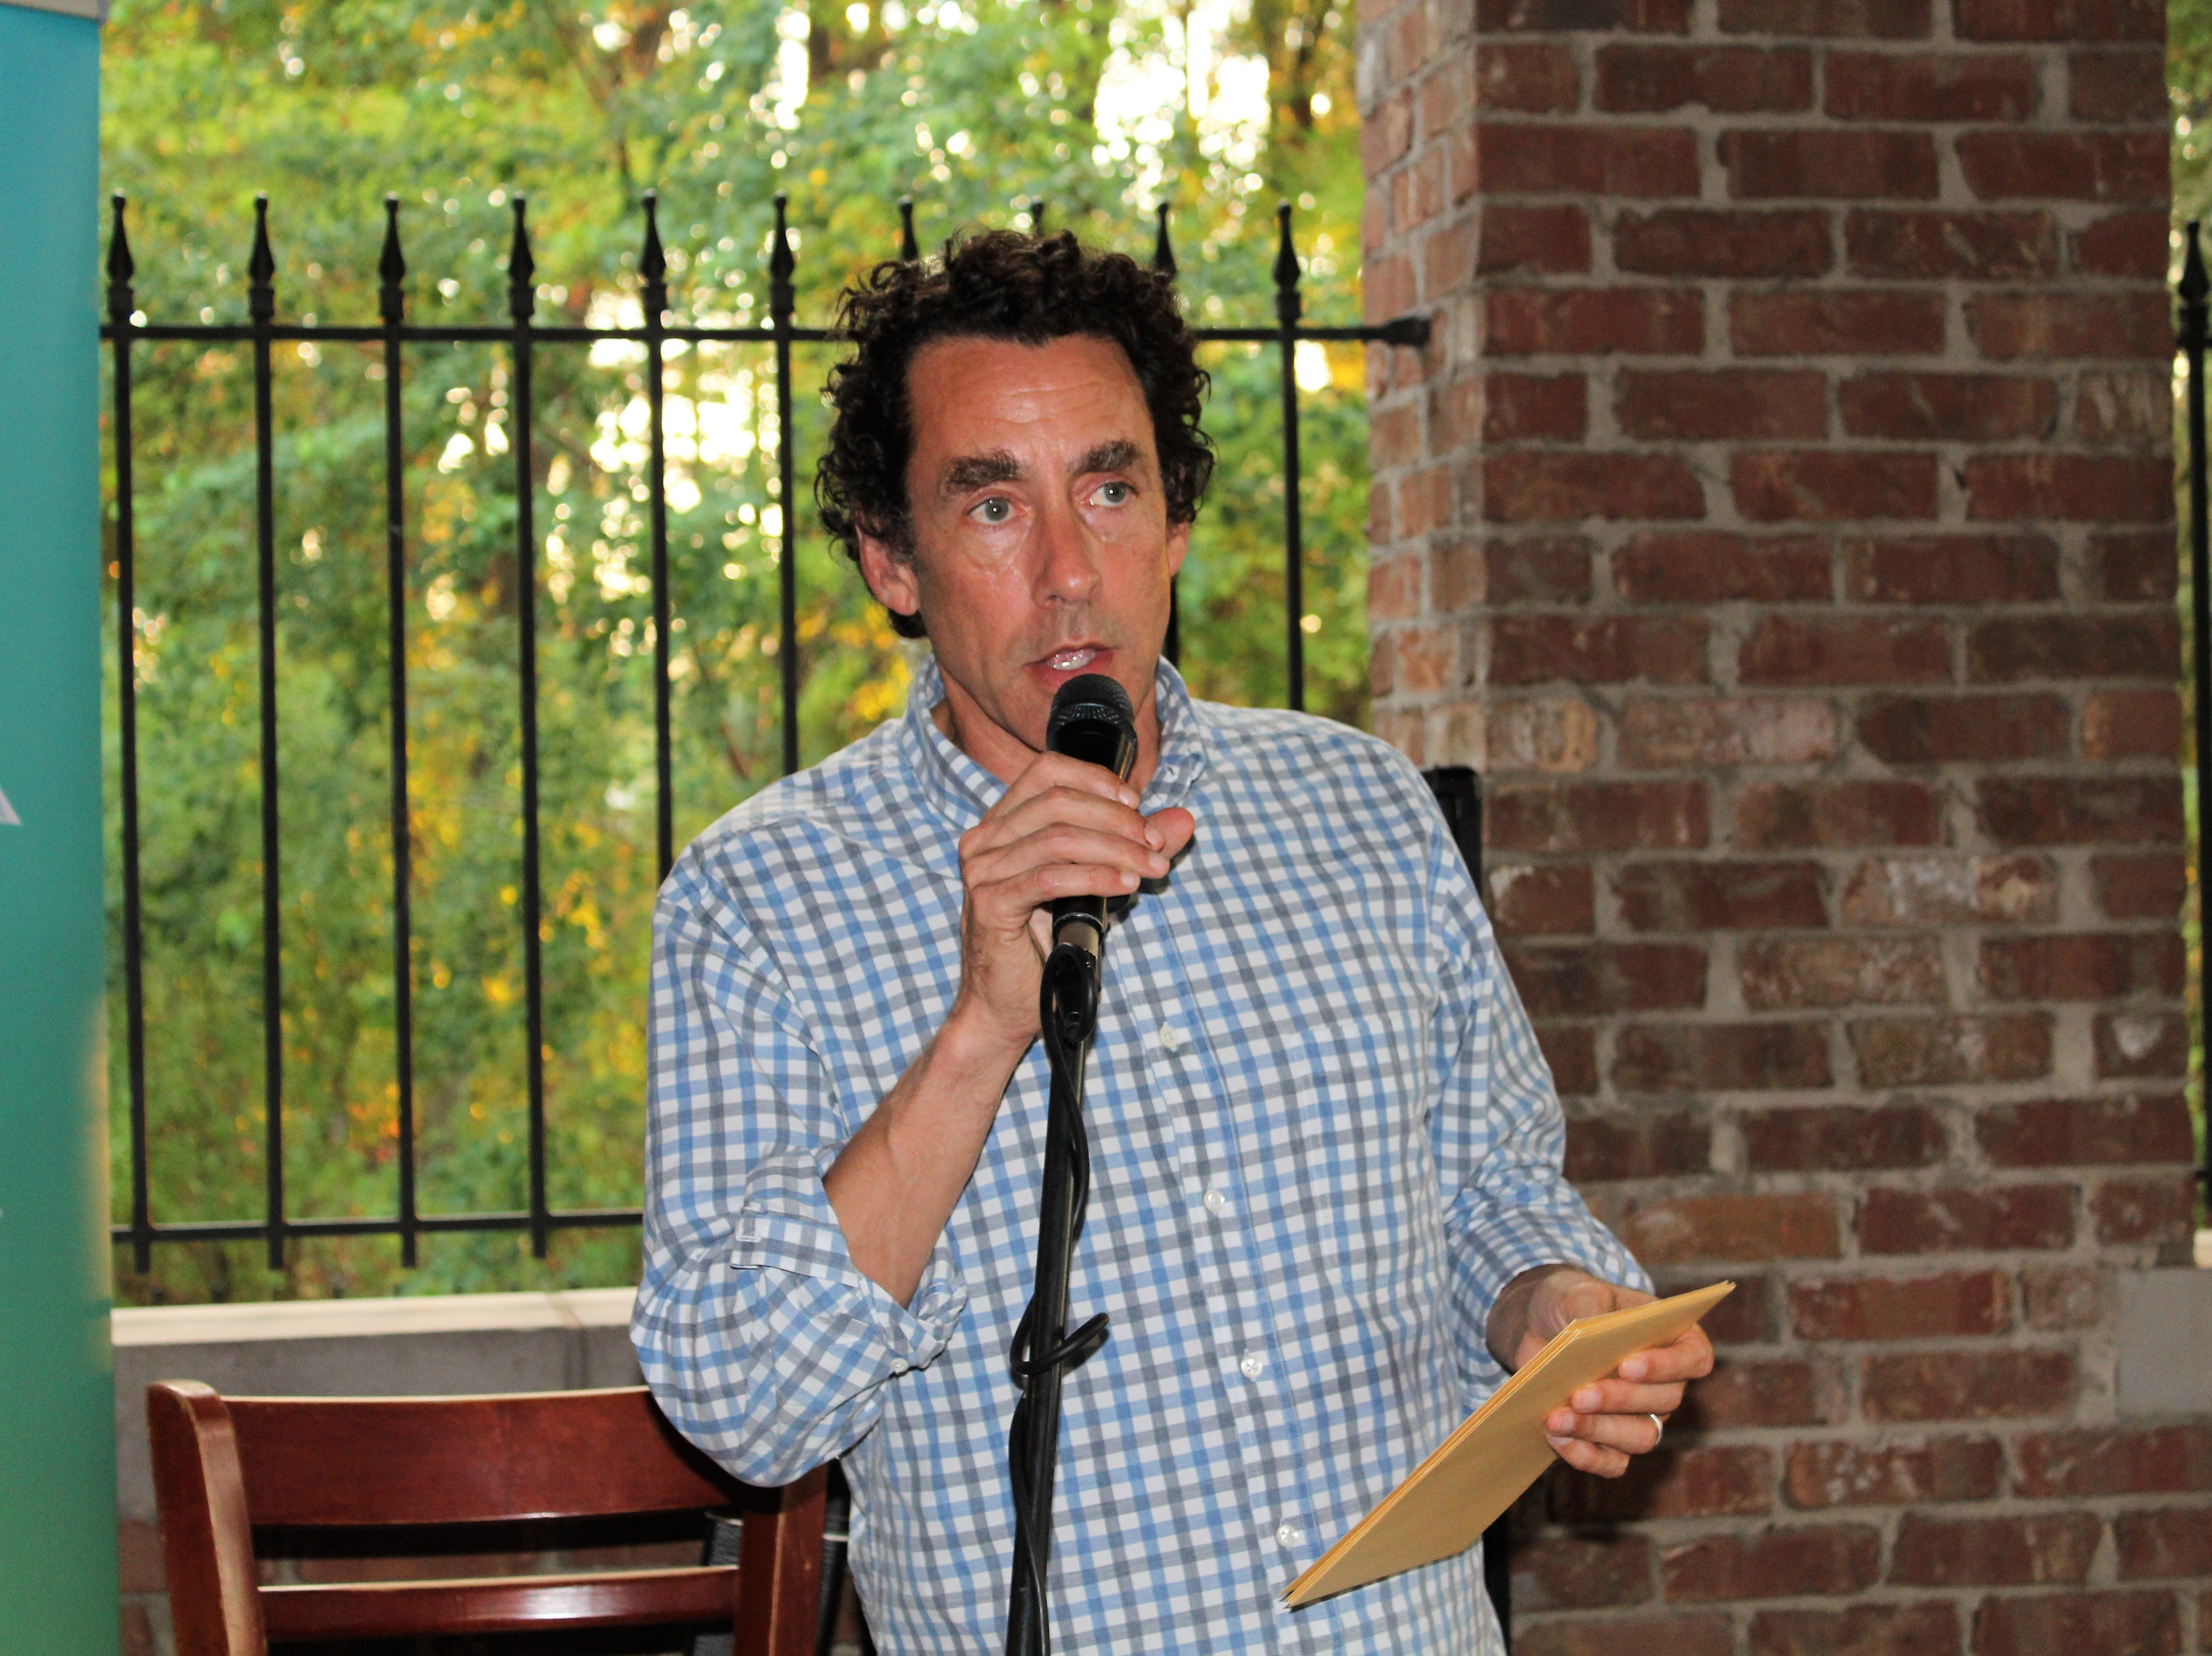 Louisiana Music Prize Top 5 finalists were announced Sept. 6 at Twisted Root Burger Co. in Shreveport.